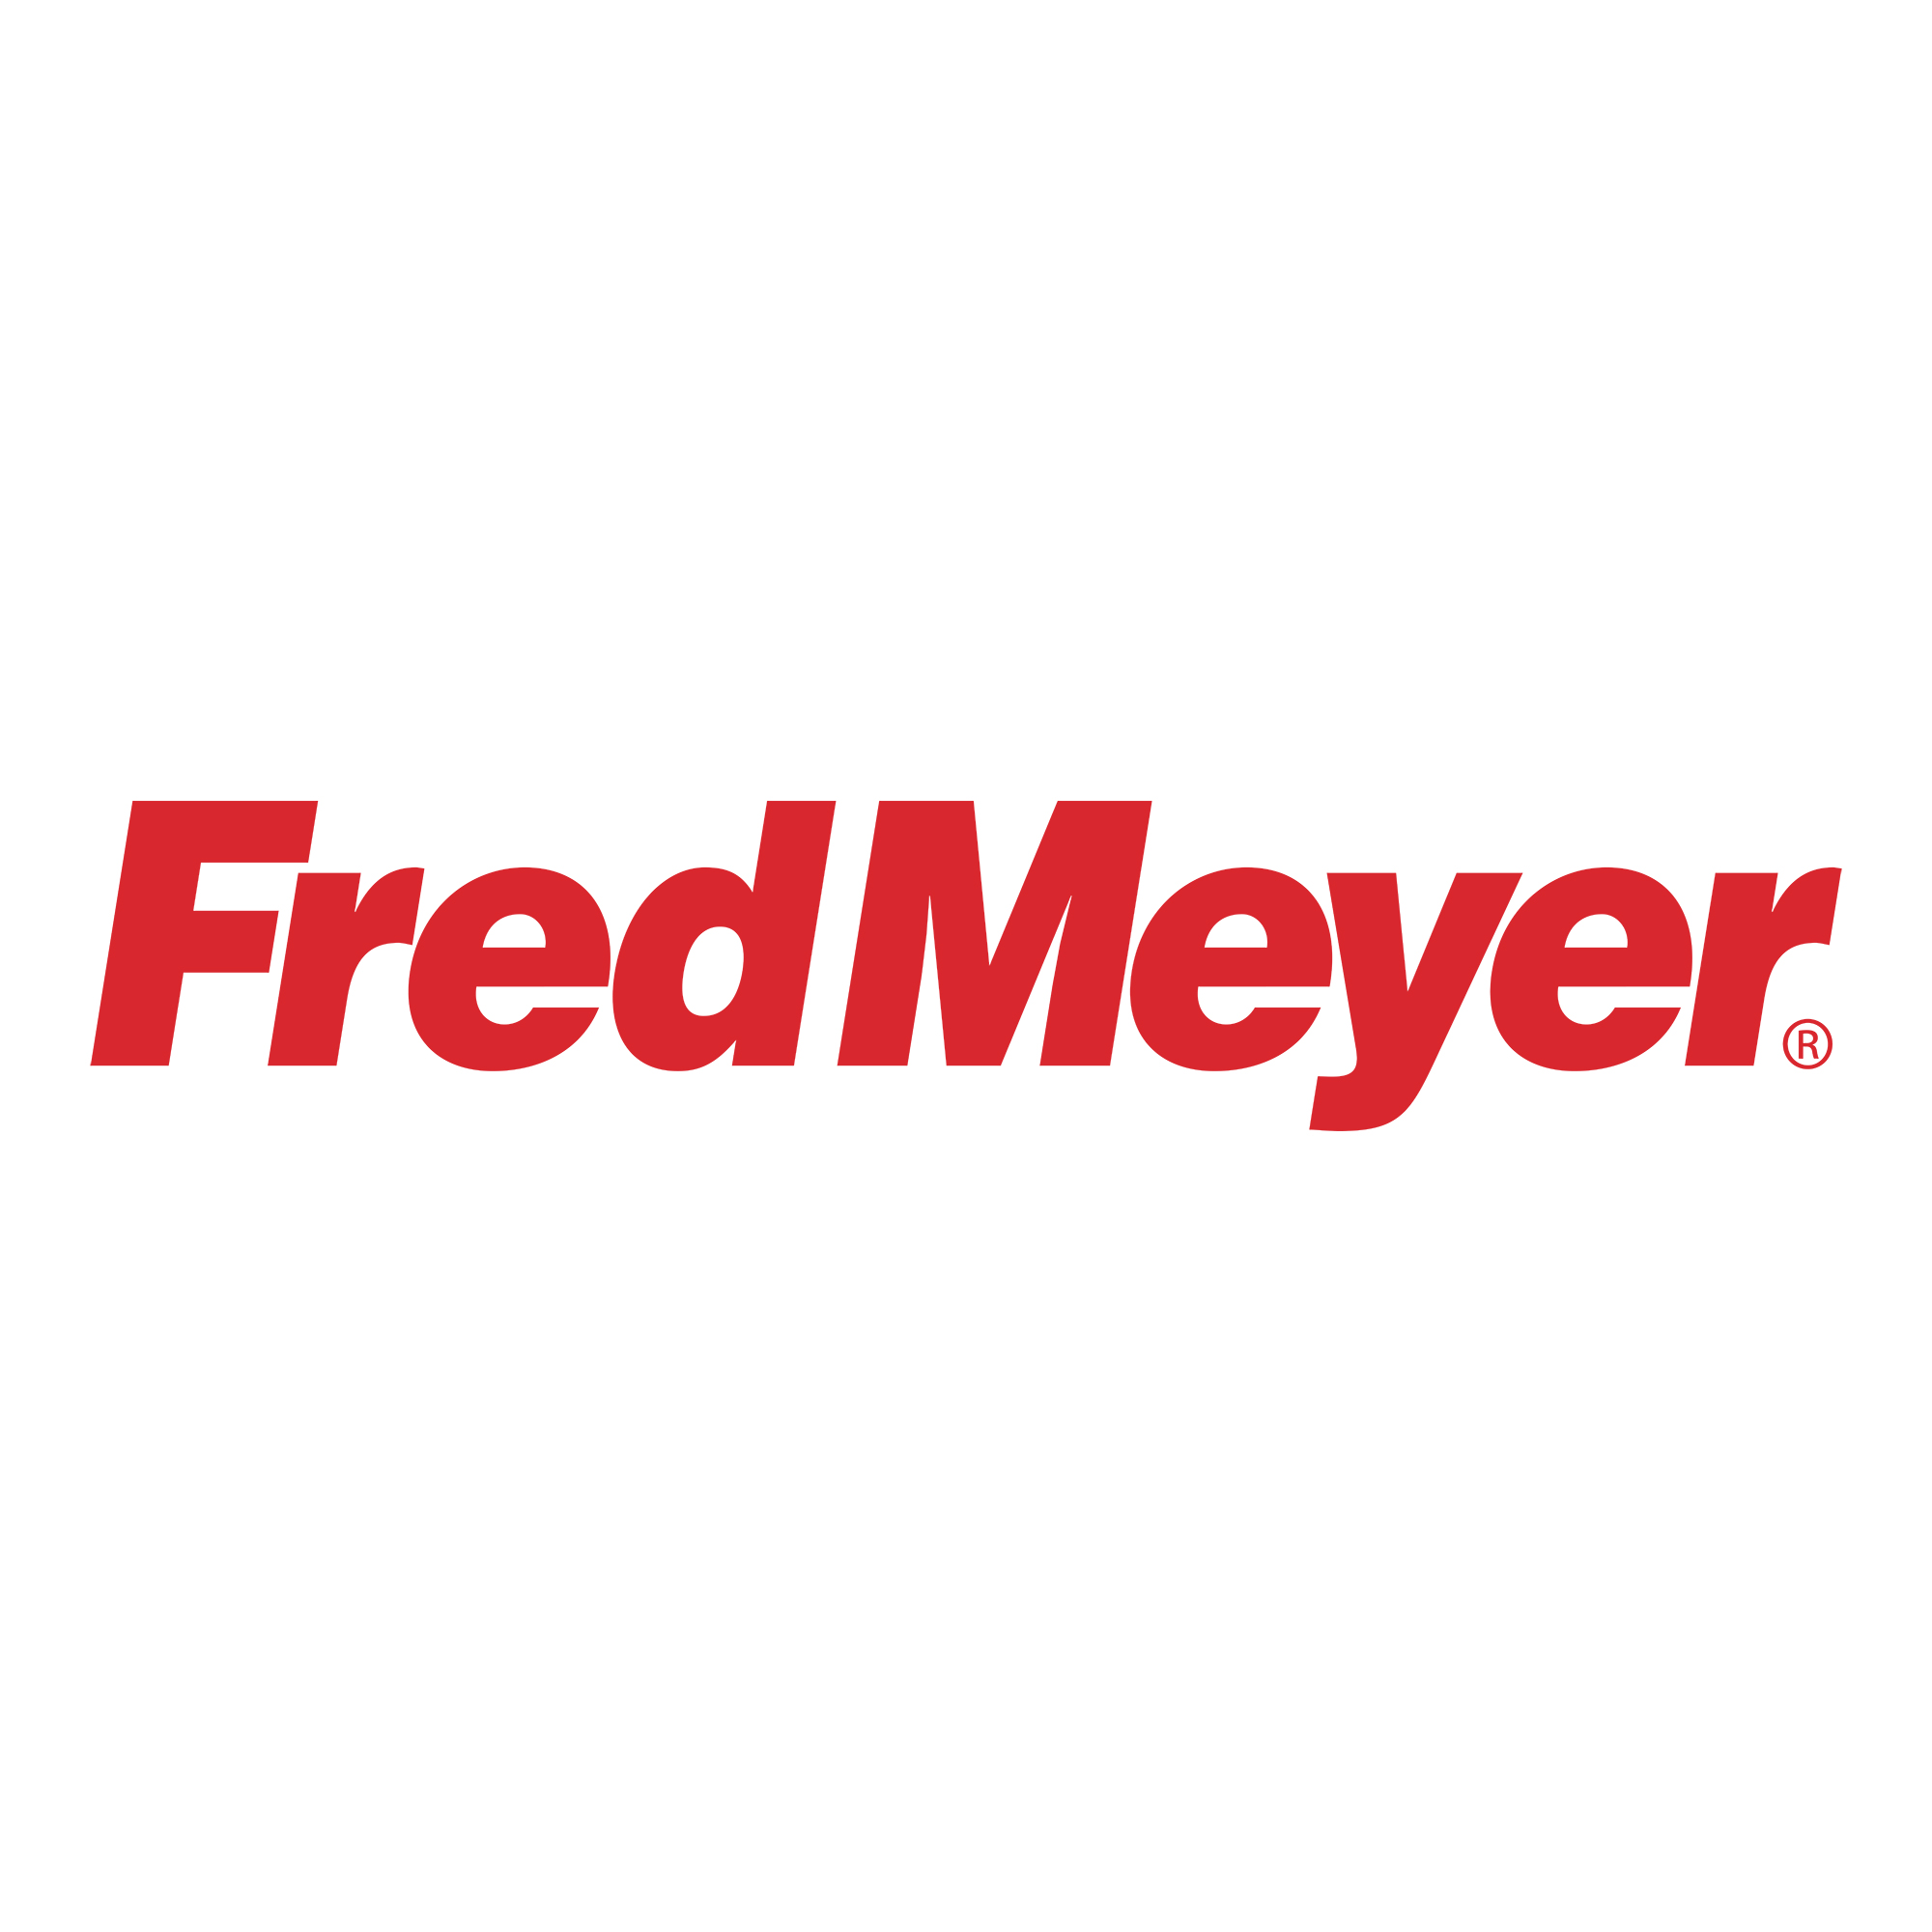 Fred Meyer is a sponsor of the 2020 Lynnwood Art of Food & Wine event on February 8.